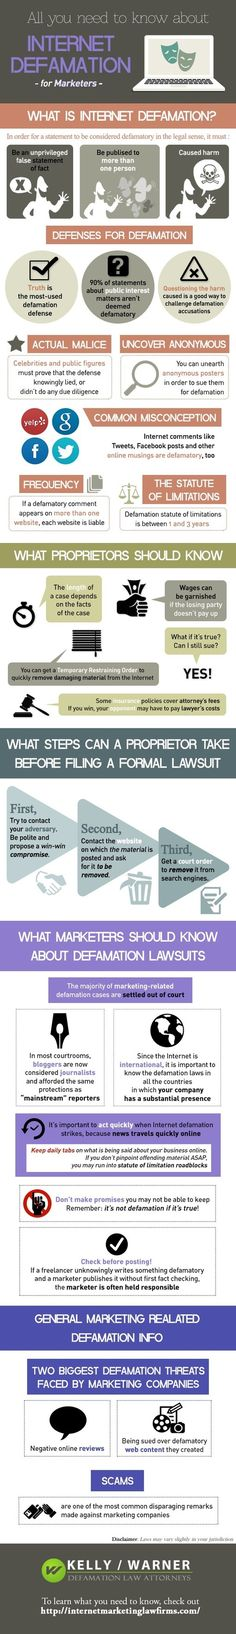 What Marketers Should Know About Online Defamation [Infographic]